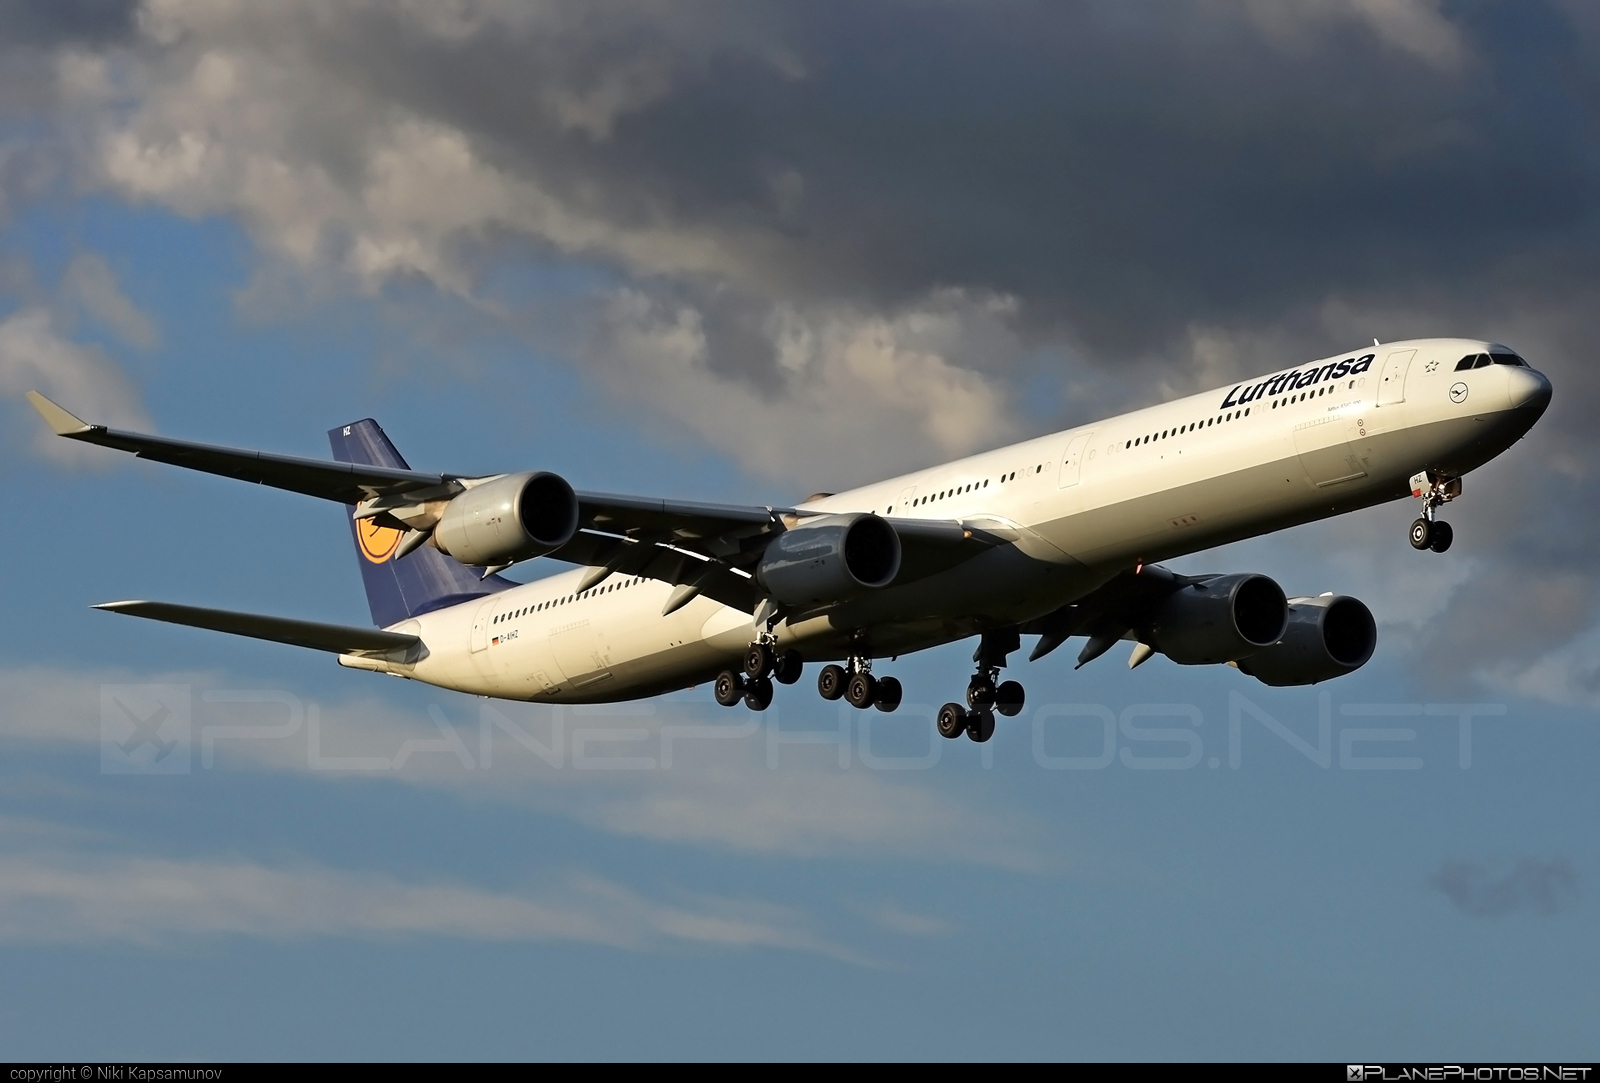 Airbus A340-642 - D-AIHZ operated by Lufthansa #a340 #a340family #airbus #airbus340 #lufthansa